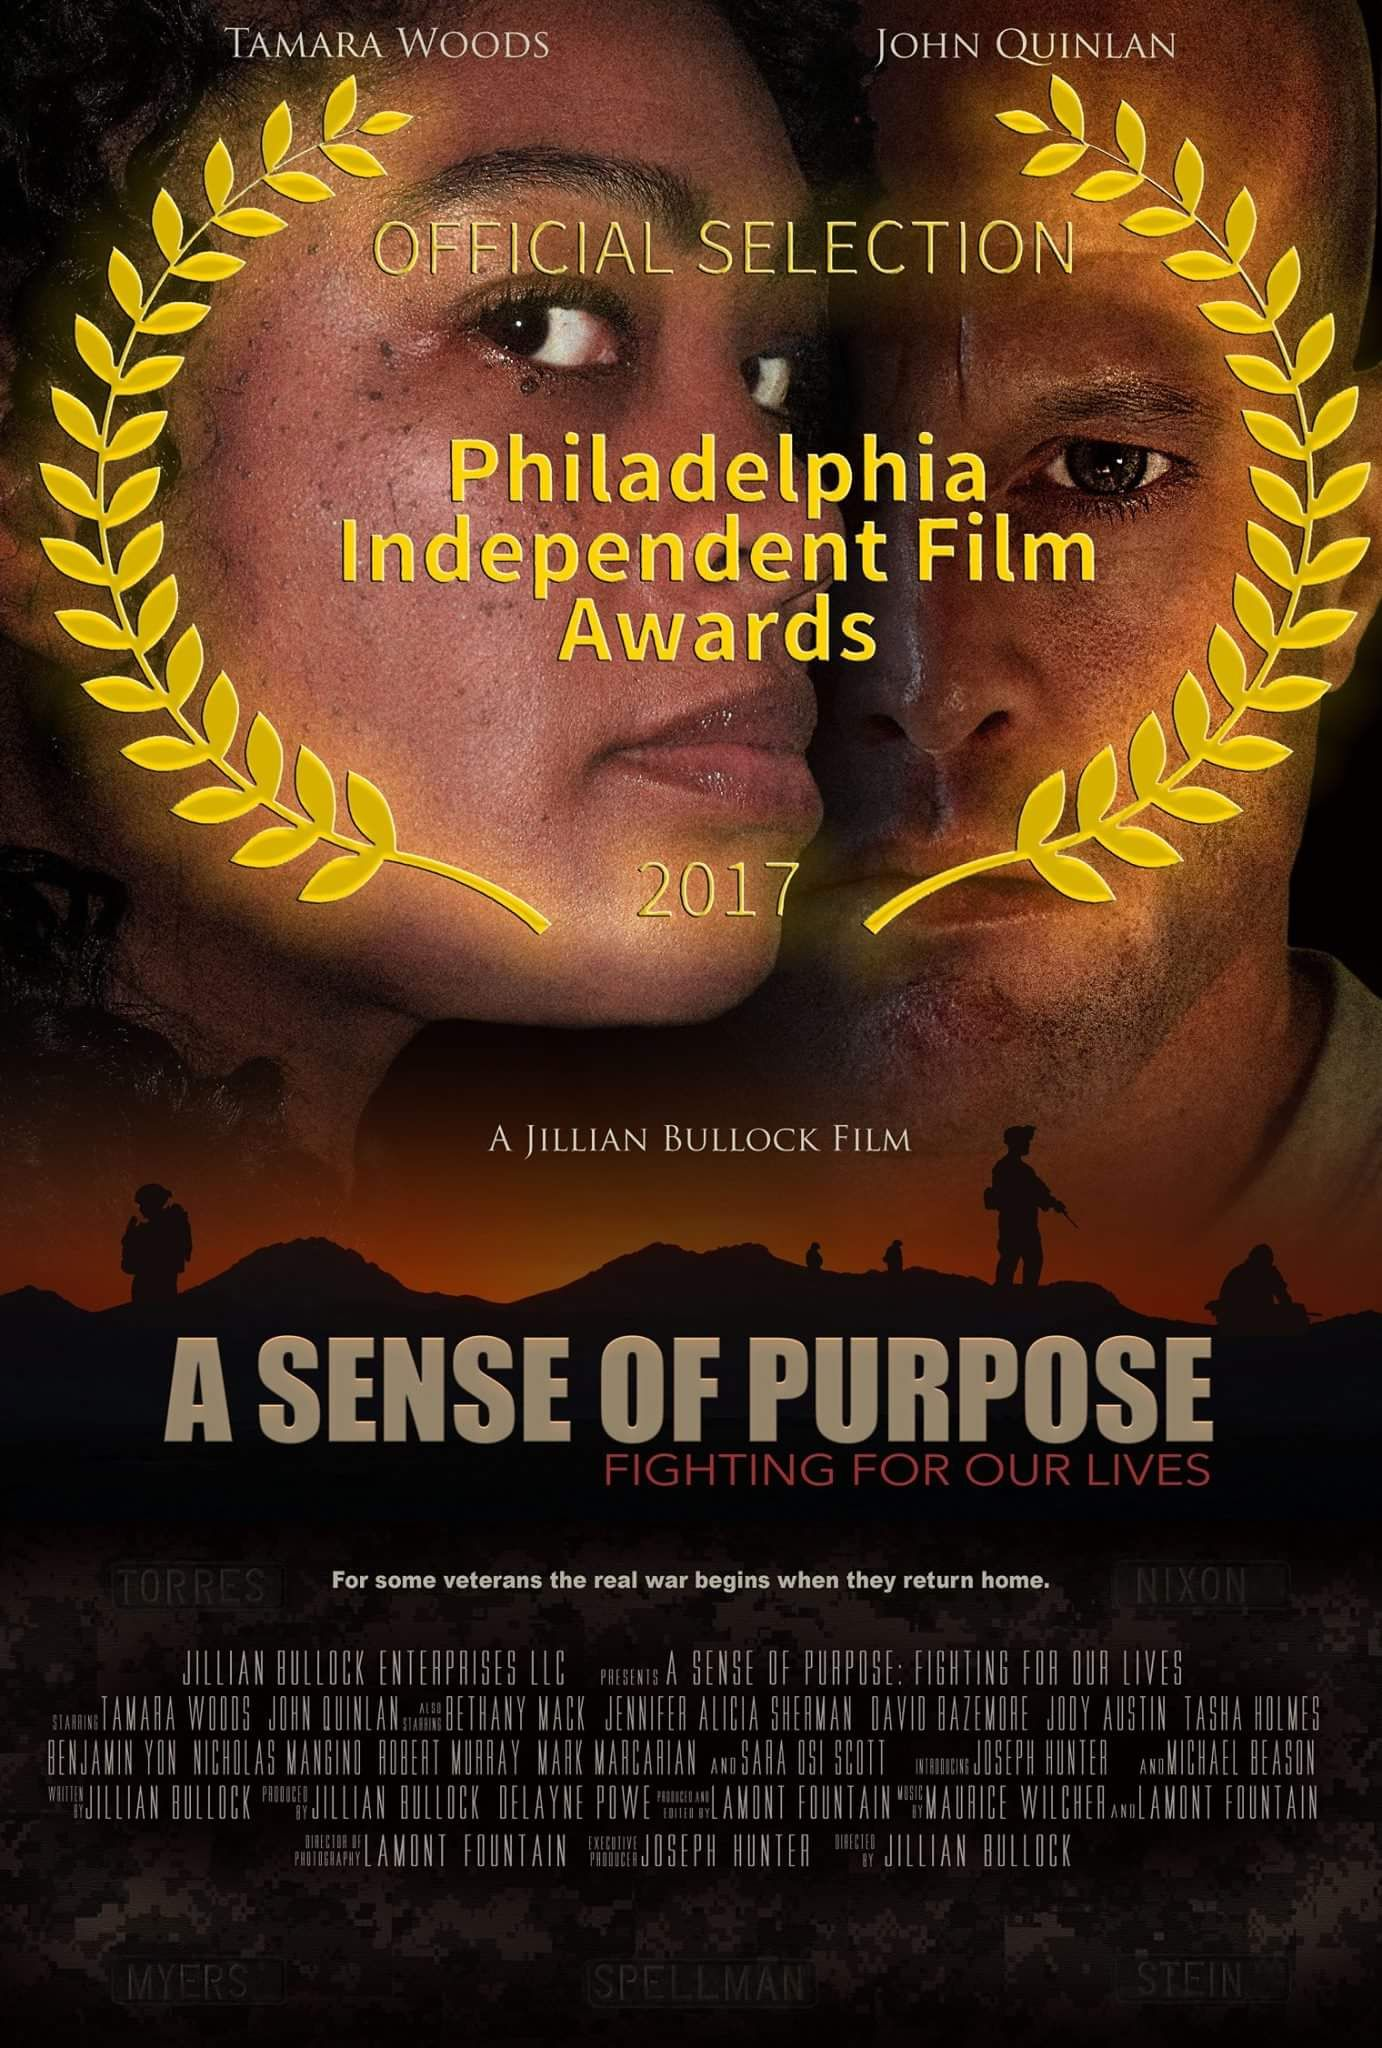 ASOP Movie Poster Actor John Joseph Quinlan & Tamara Woods A Jillian Bullock Film #JohnQuinlan #JillianBullock #ASenseOfPurpose #Movie #TamaraWoods #ASOP #military #sexualassault #filmfestival #Philadelphia